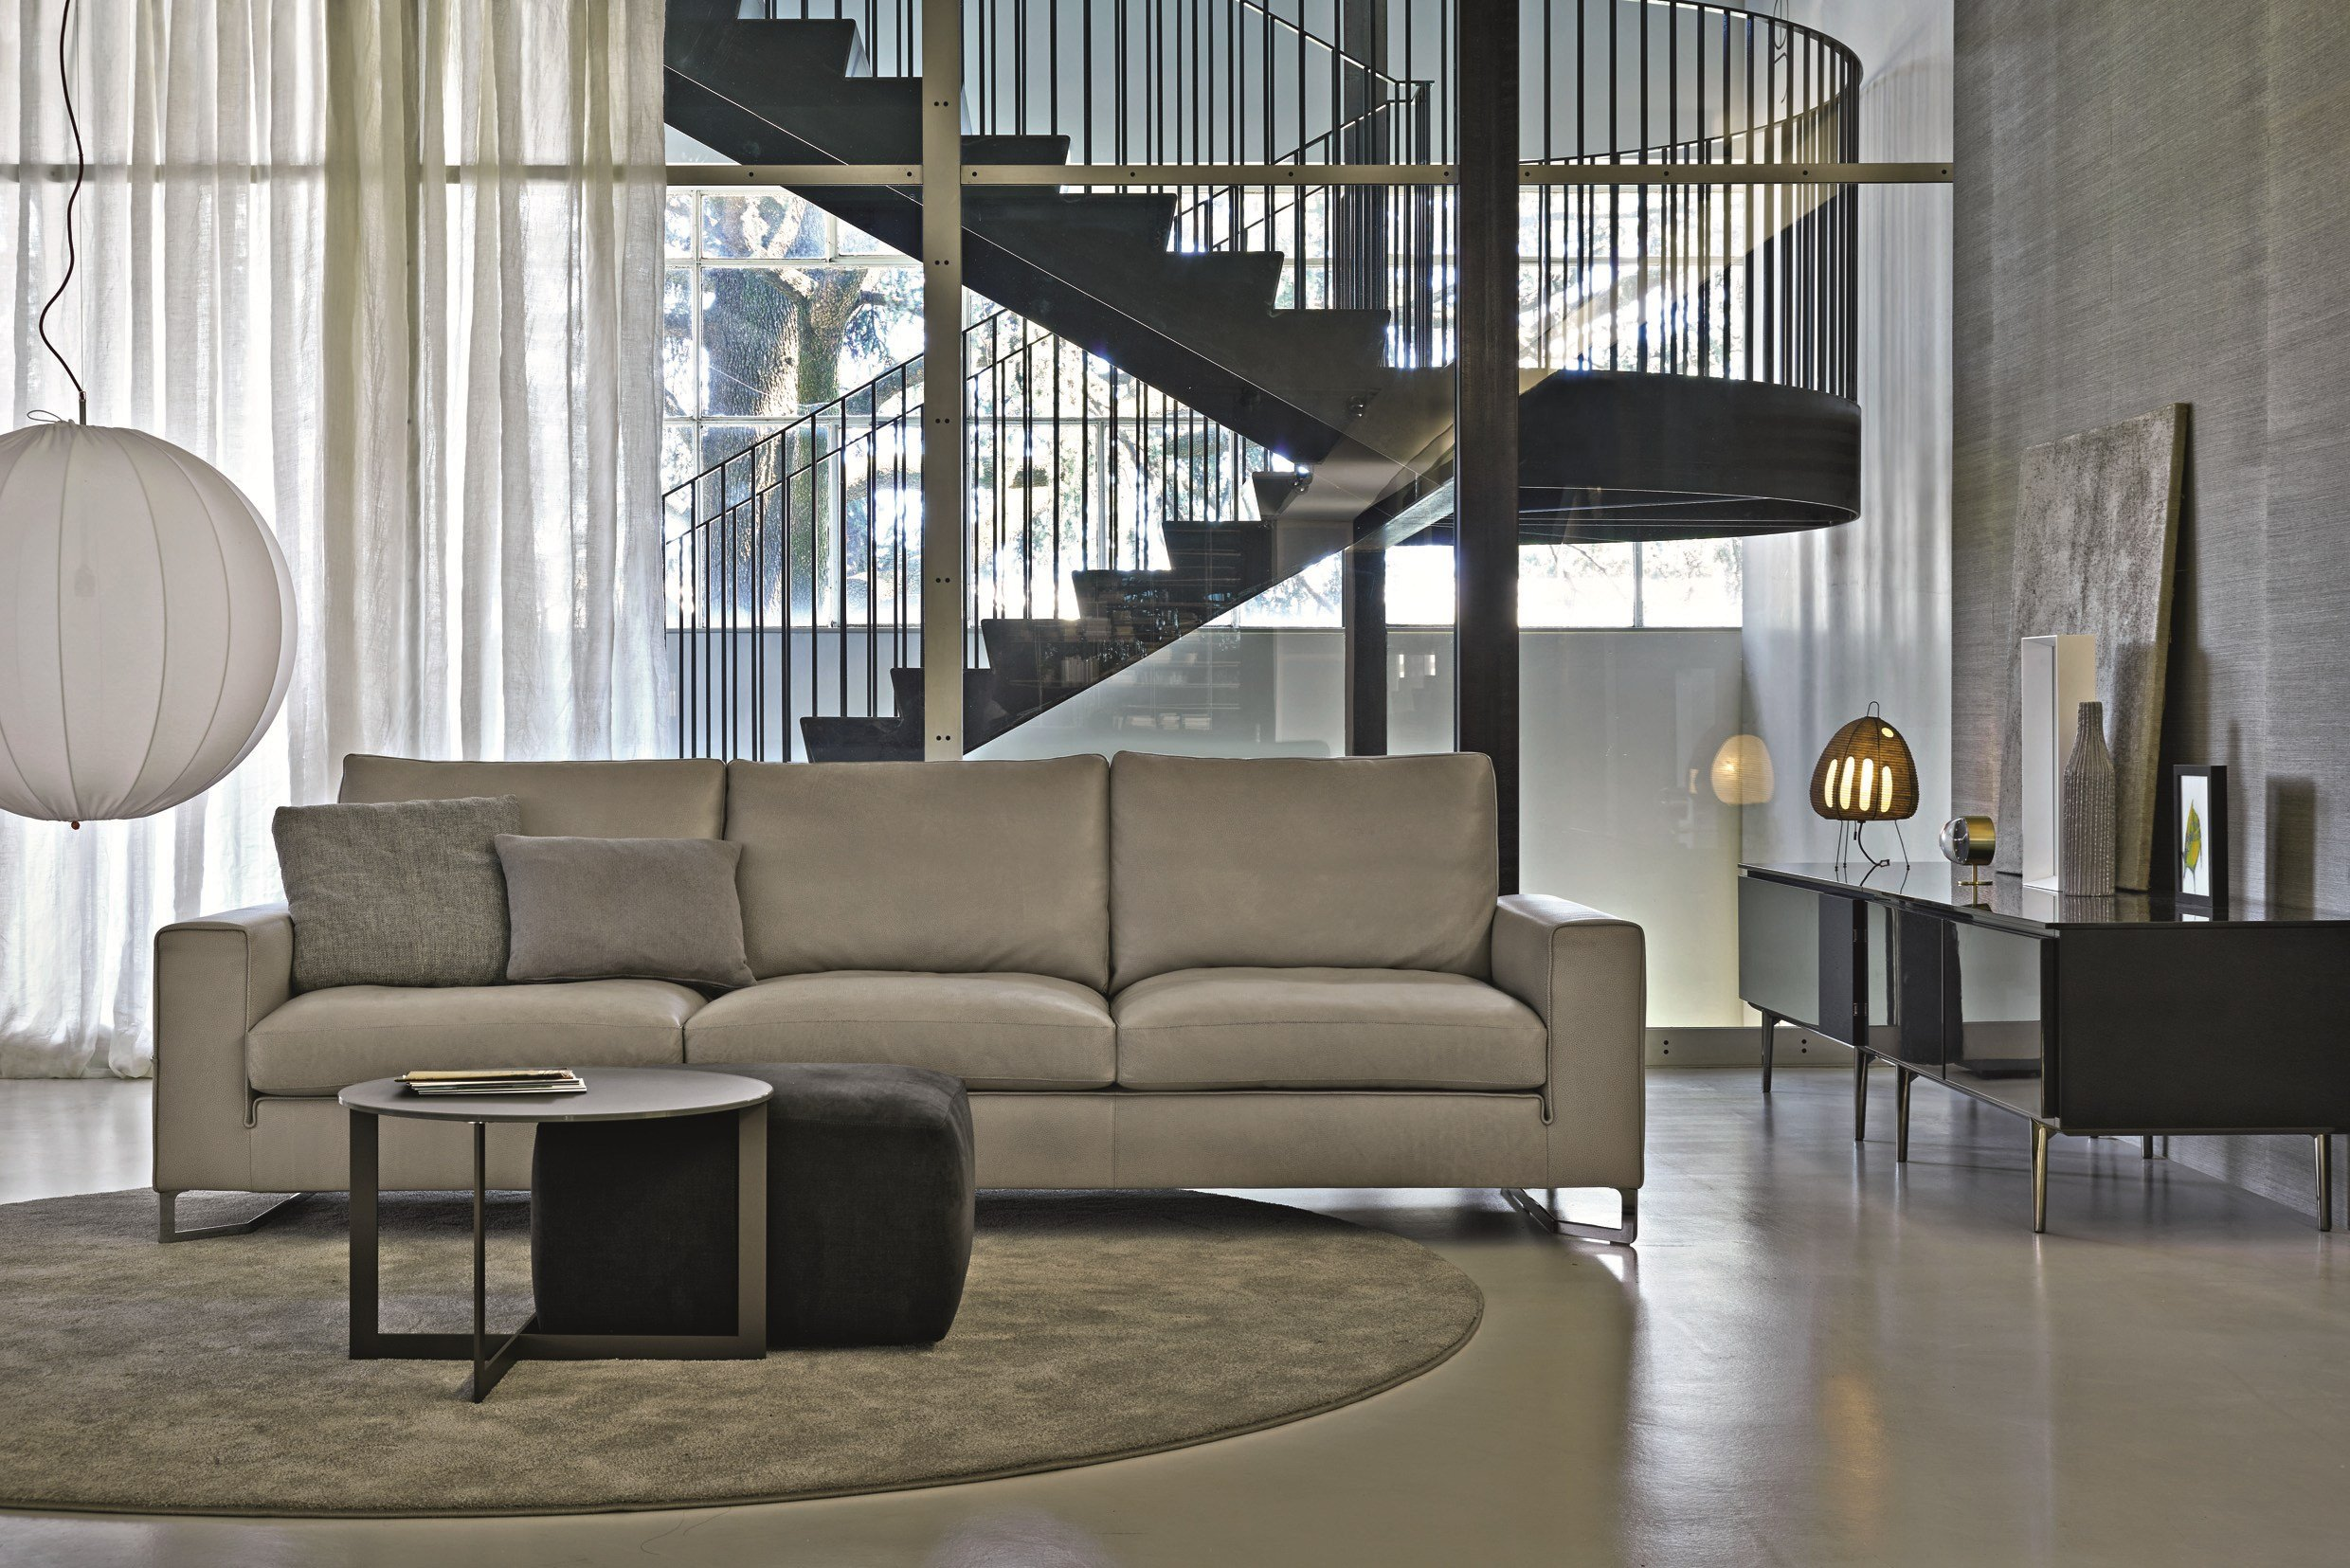 sitzpuff couchtisch domino by molteni c design nicola gallizia. Black Bedroom Furniture Sets. Home Design Ideas